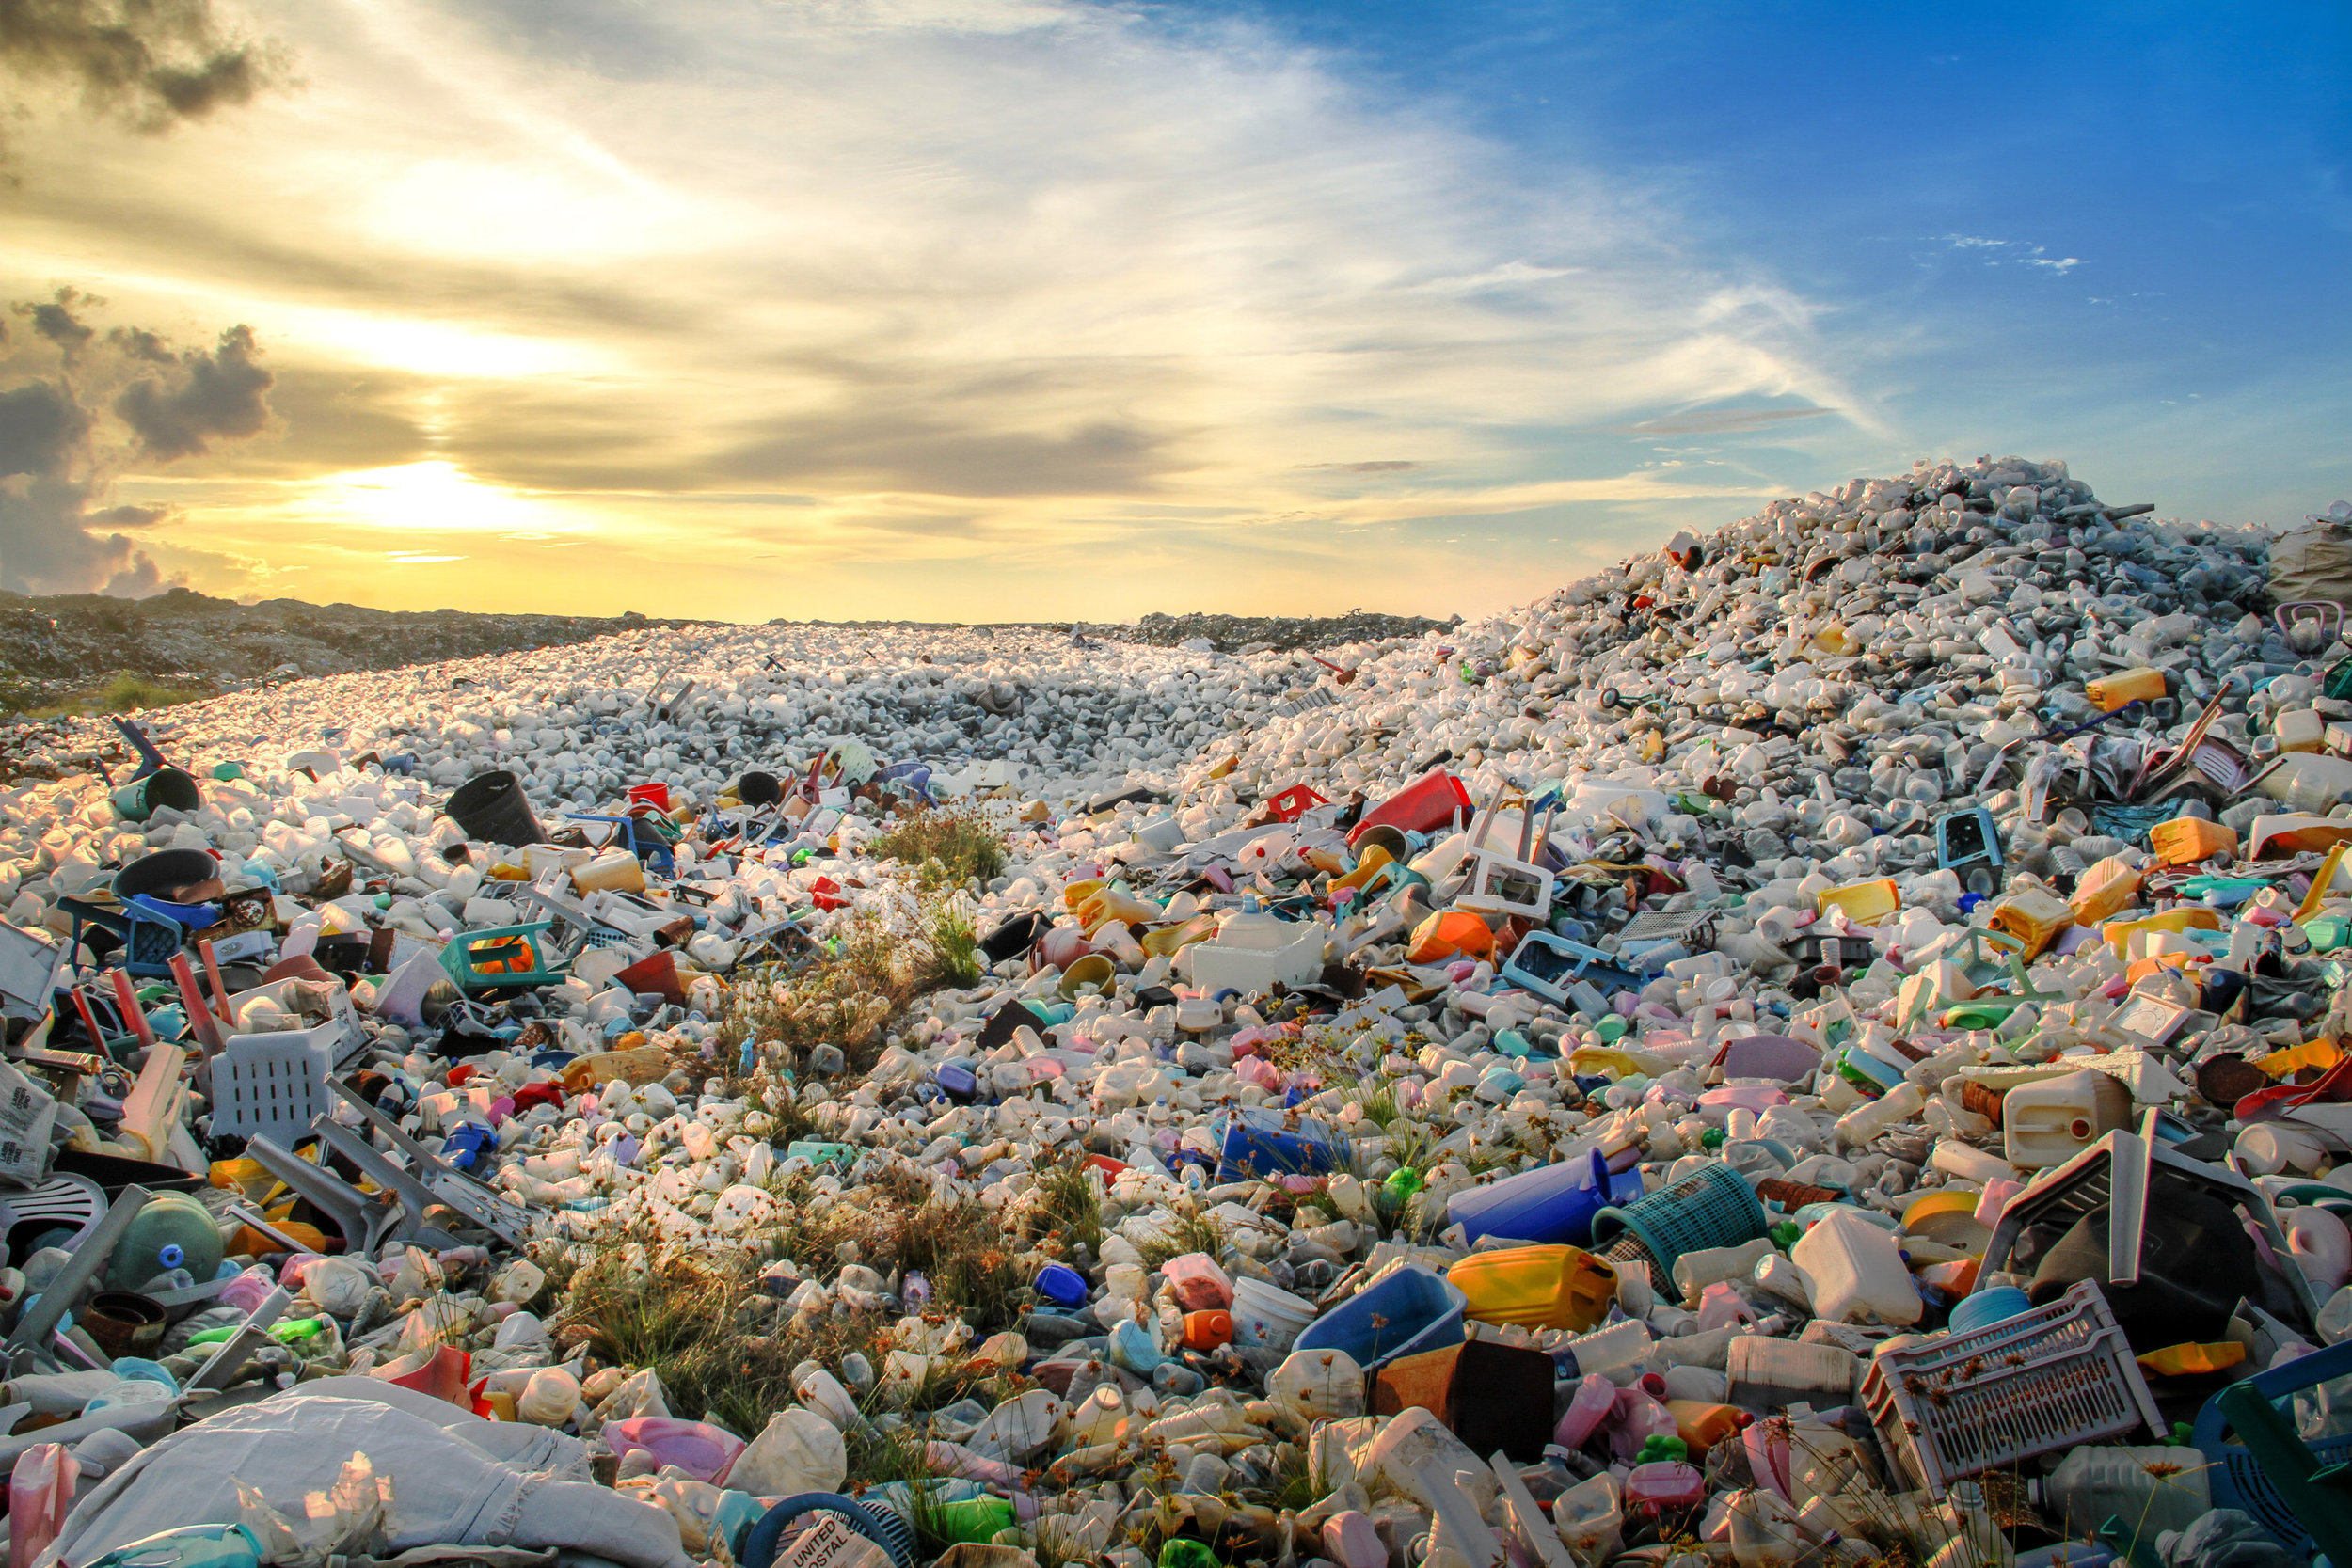 Plastic pollution is the leading cause of threat to wildlife right now.